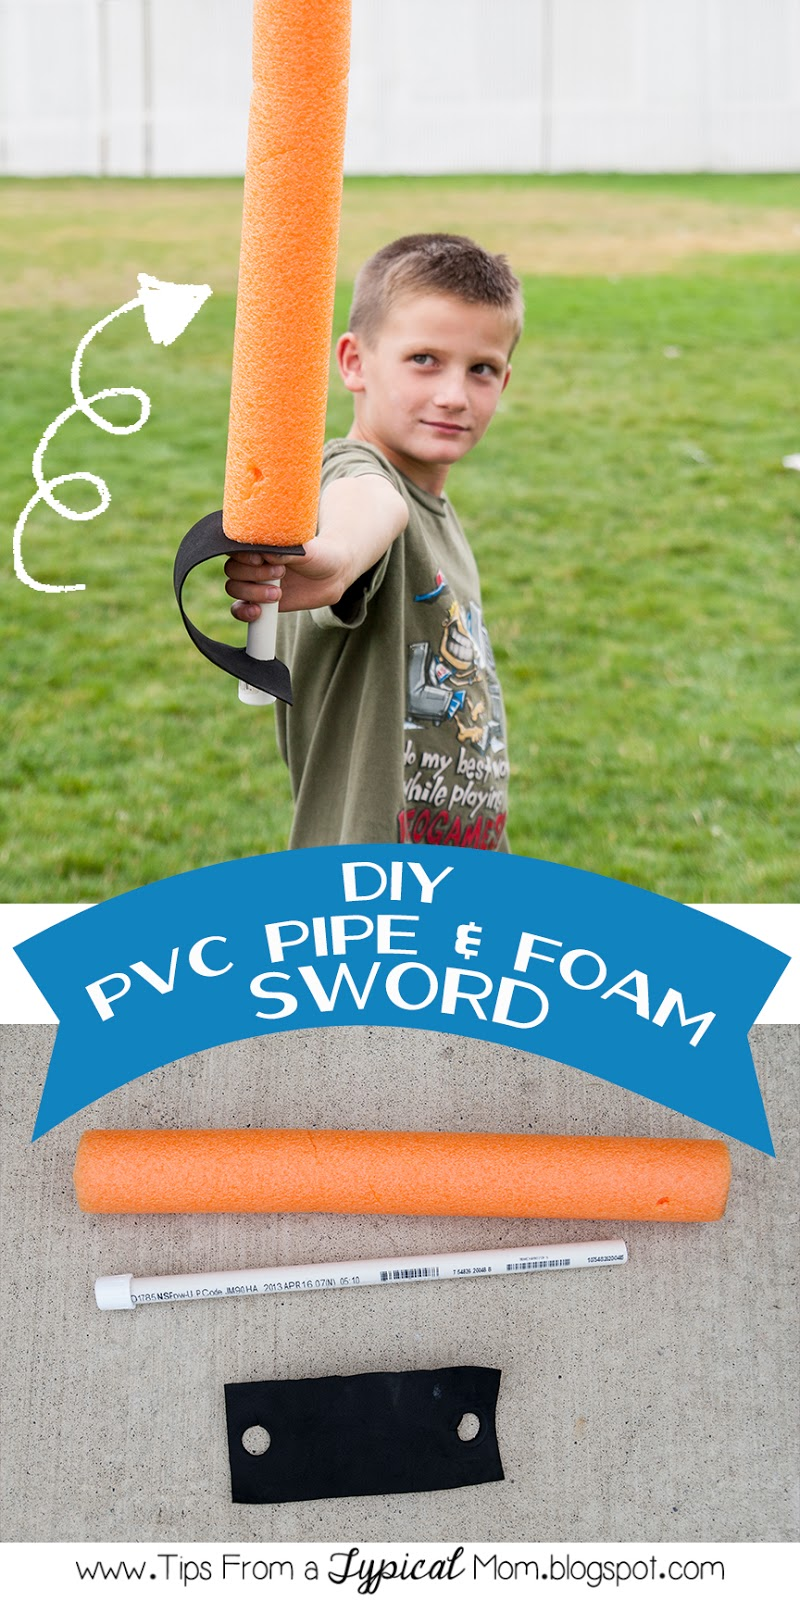 DIY} PVC Pipe & Foam Sword - Tips from a Typical Mom